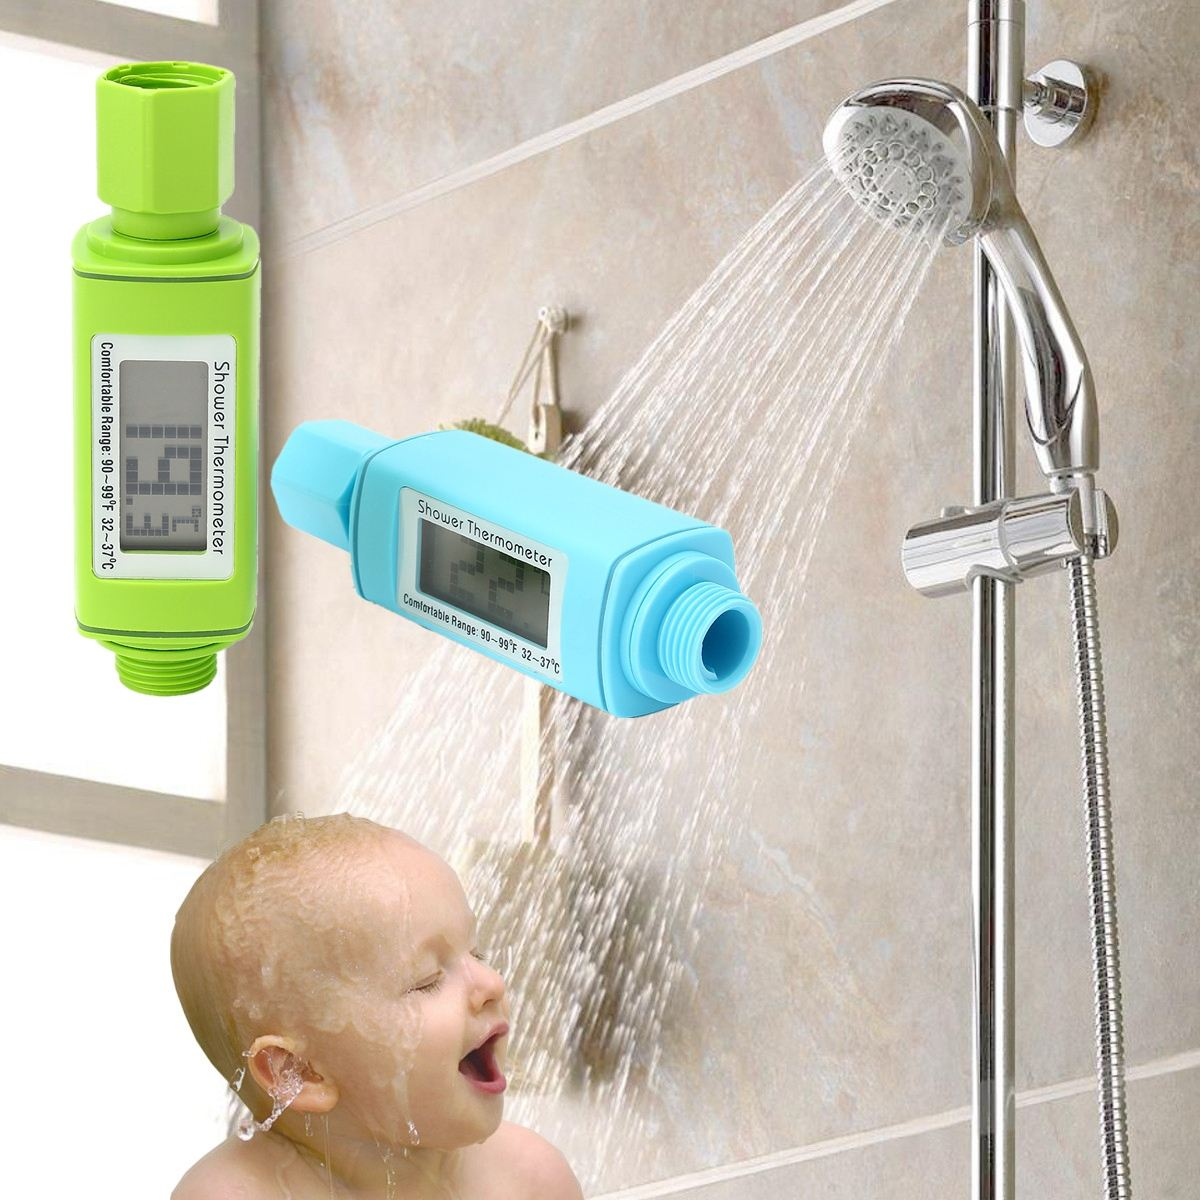 loskii lm 303 digital shower head water thermometer water temperture meter monitor for baby care. Black Bedroom Furniture Sets. Home Design Ideas